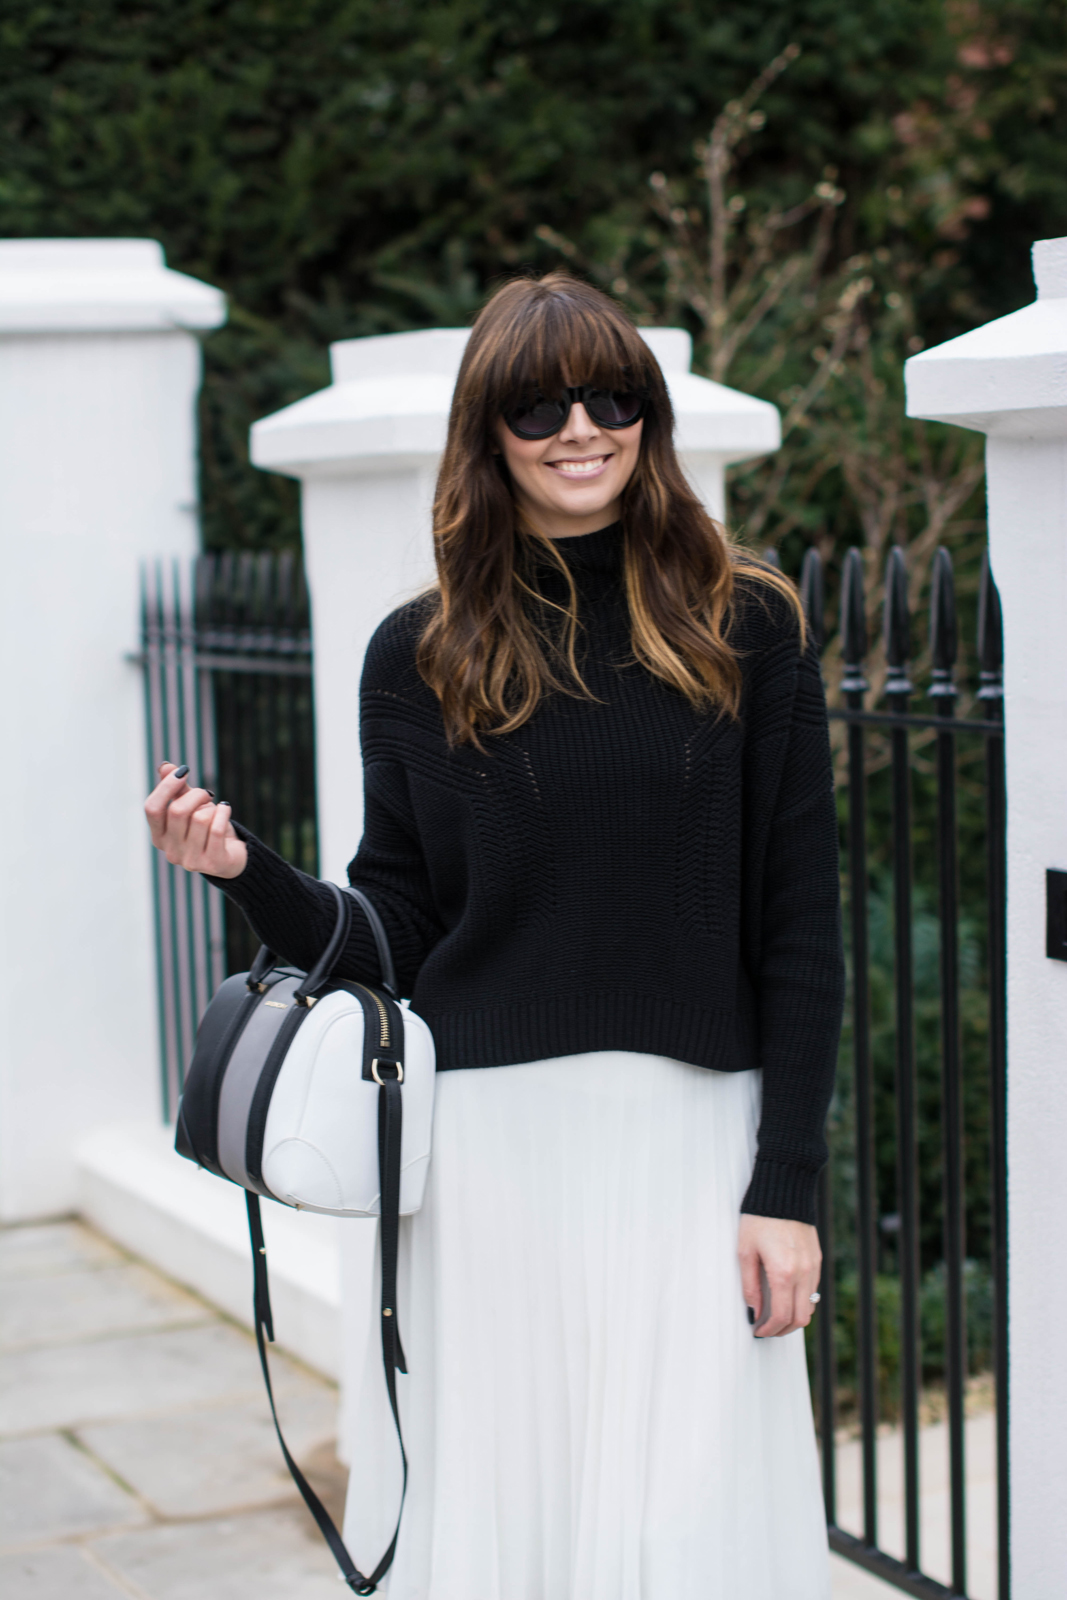 EJSTYLE - Black Topshop jumper, White pleated asos midi skirt, Givenchy lucrezia mini bag, monochrome OOTD, fashion blogger Emma Hill